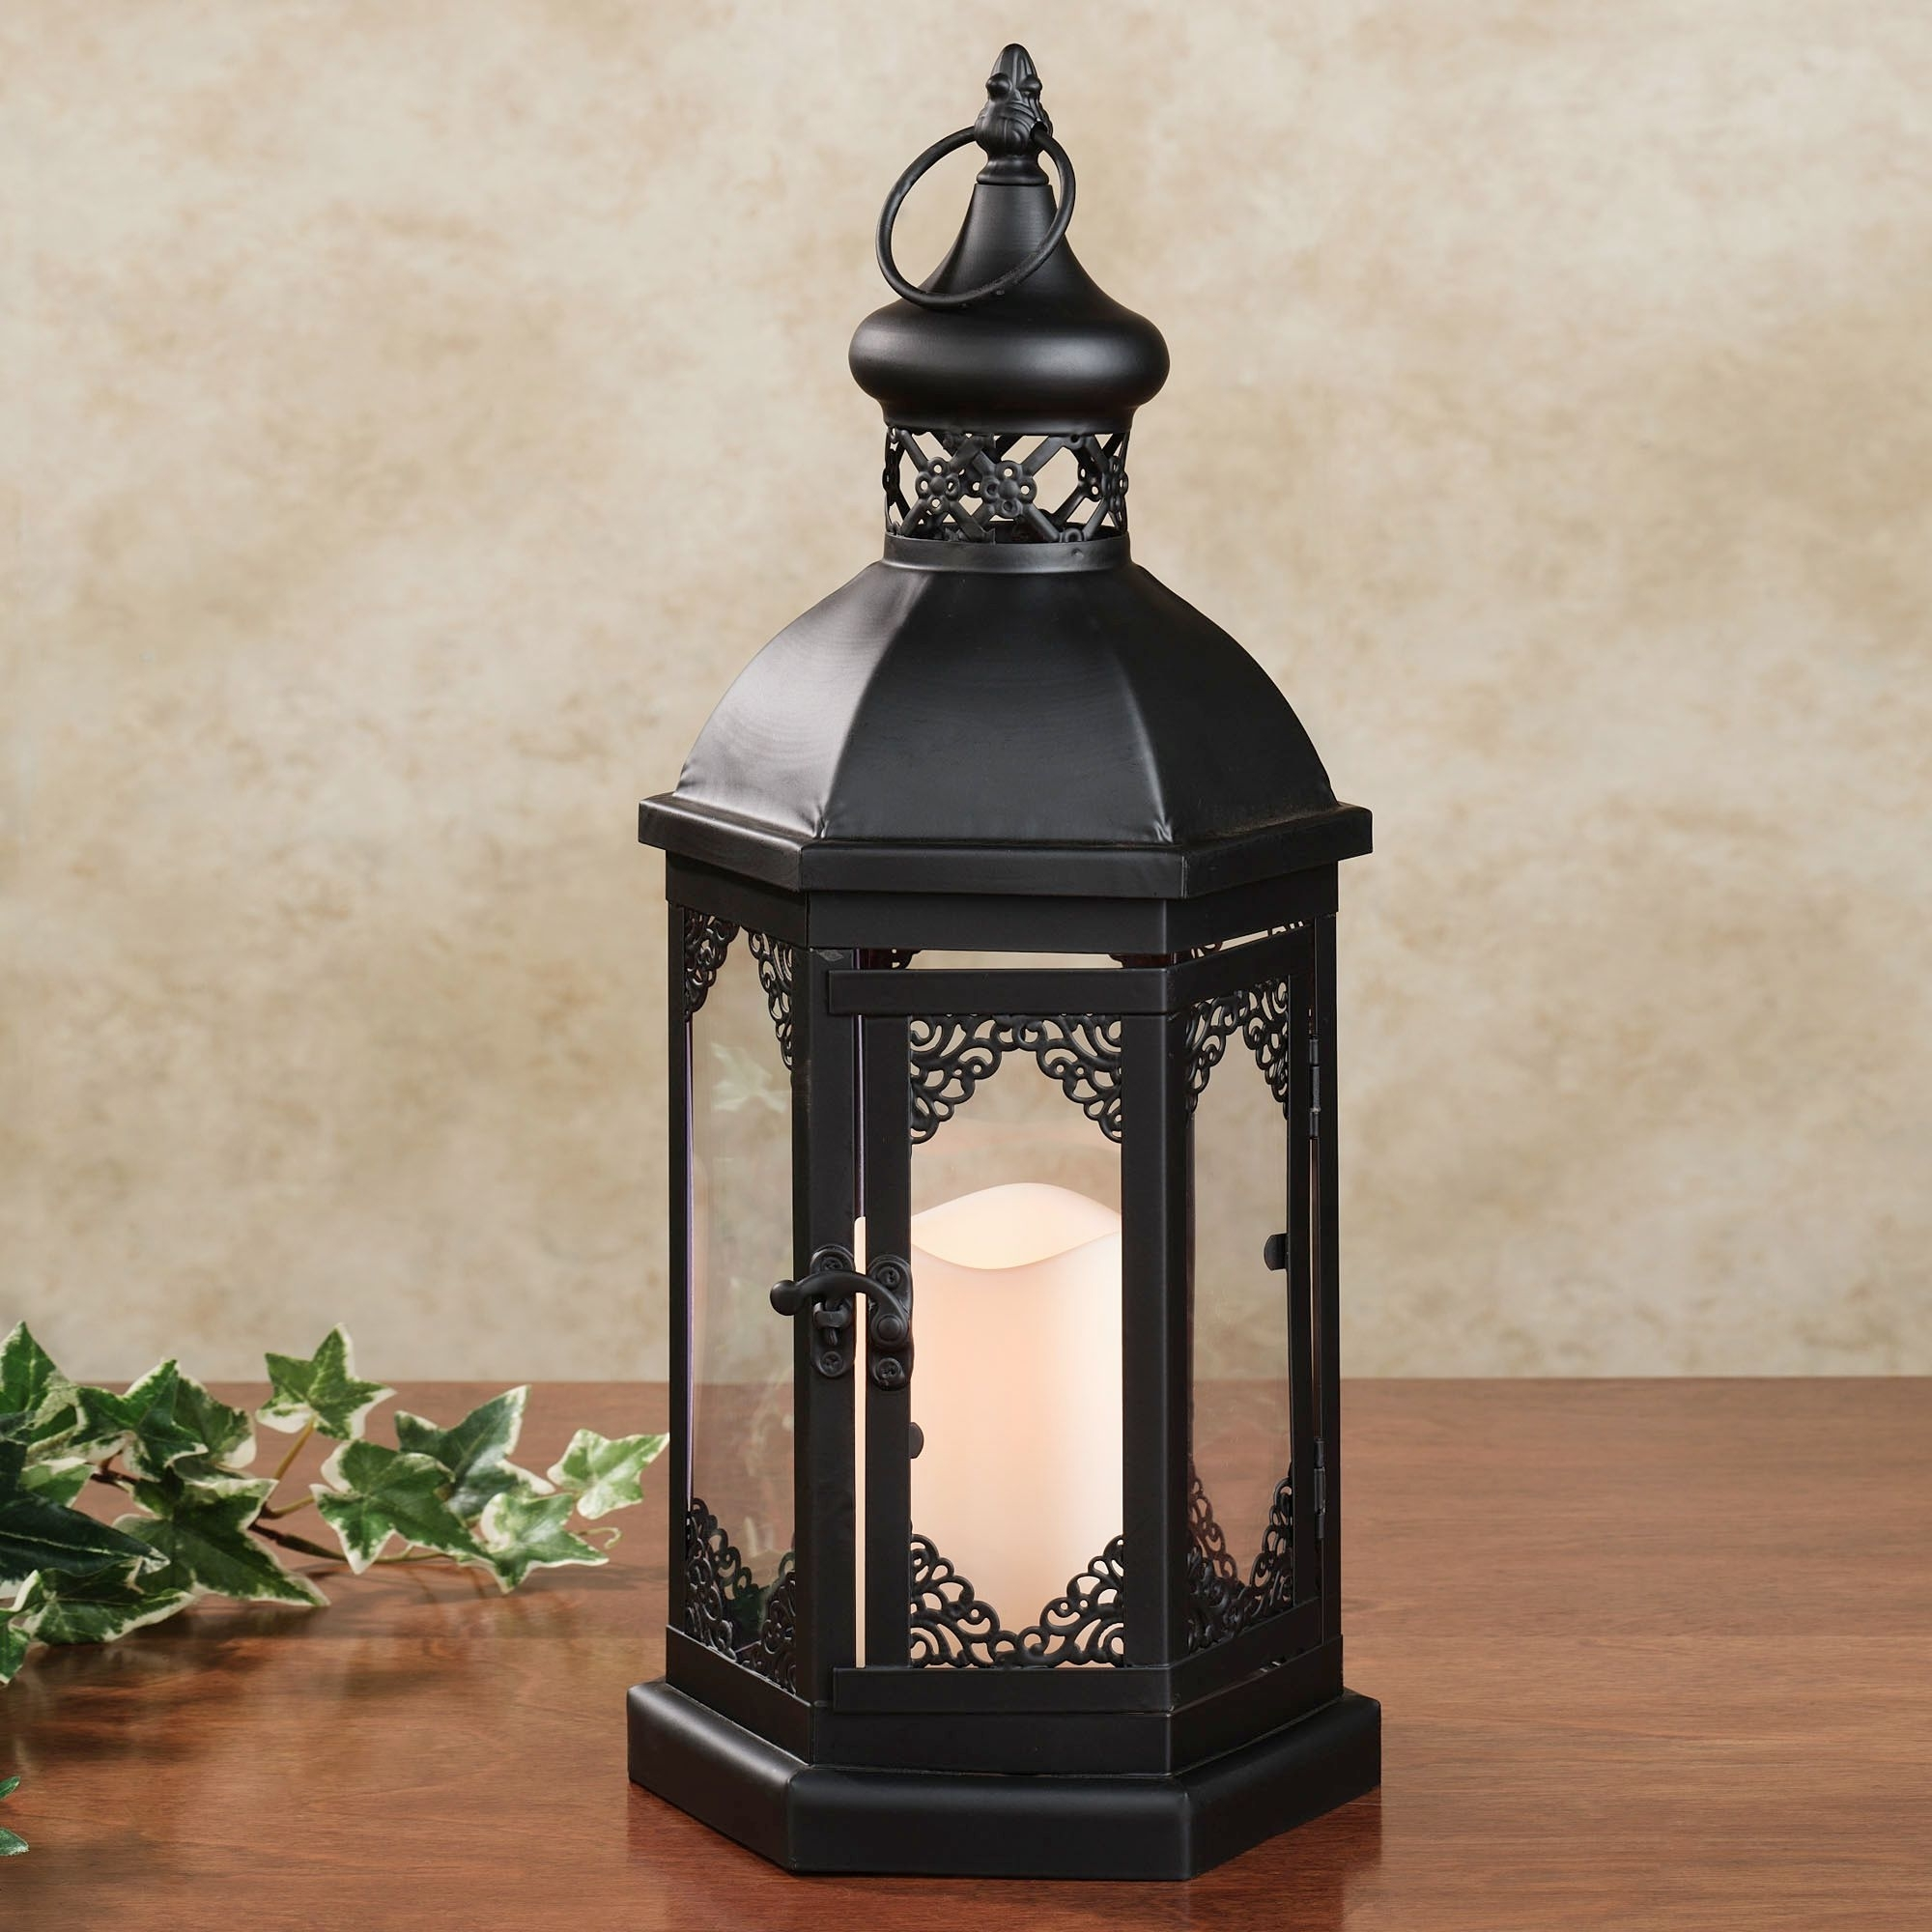 Outdoor Hanging Candle Lanterns Throughout 2019 Garden & Outdoor: Awesome Candle Lanterns For Outdoor Lighting Ideas (View 16 of 20)